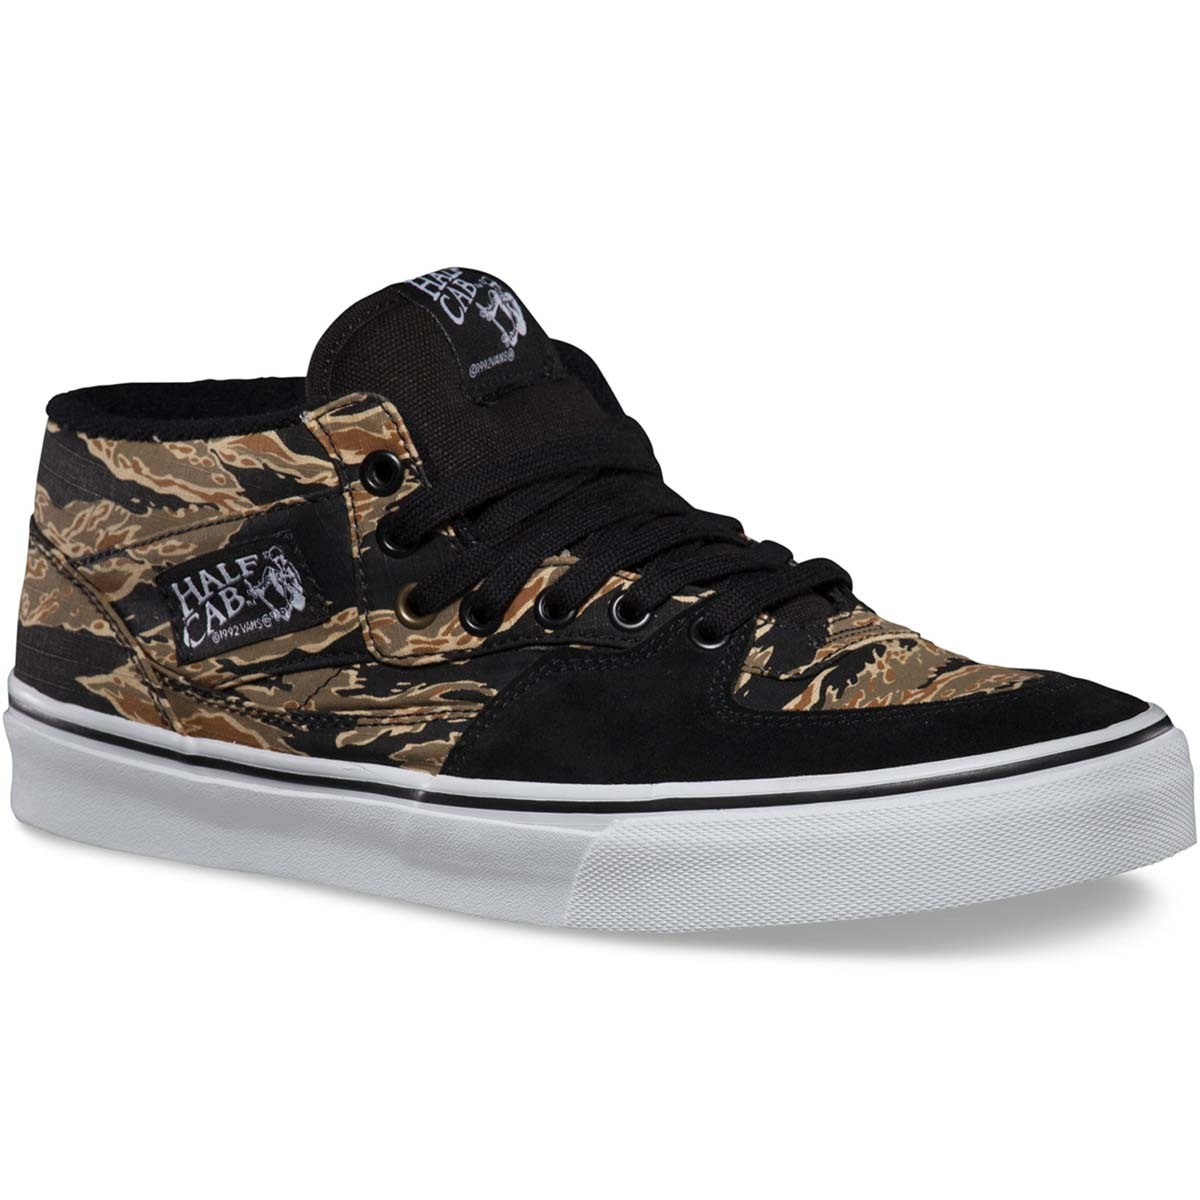 Vans Tiger Camo Half Cab Shoes - Black 11.0